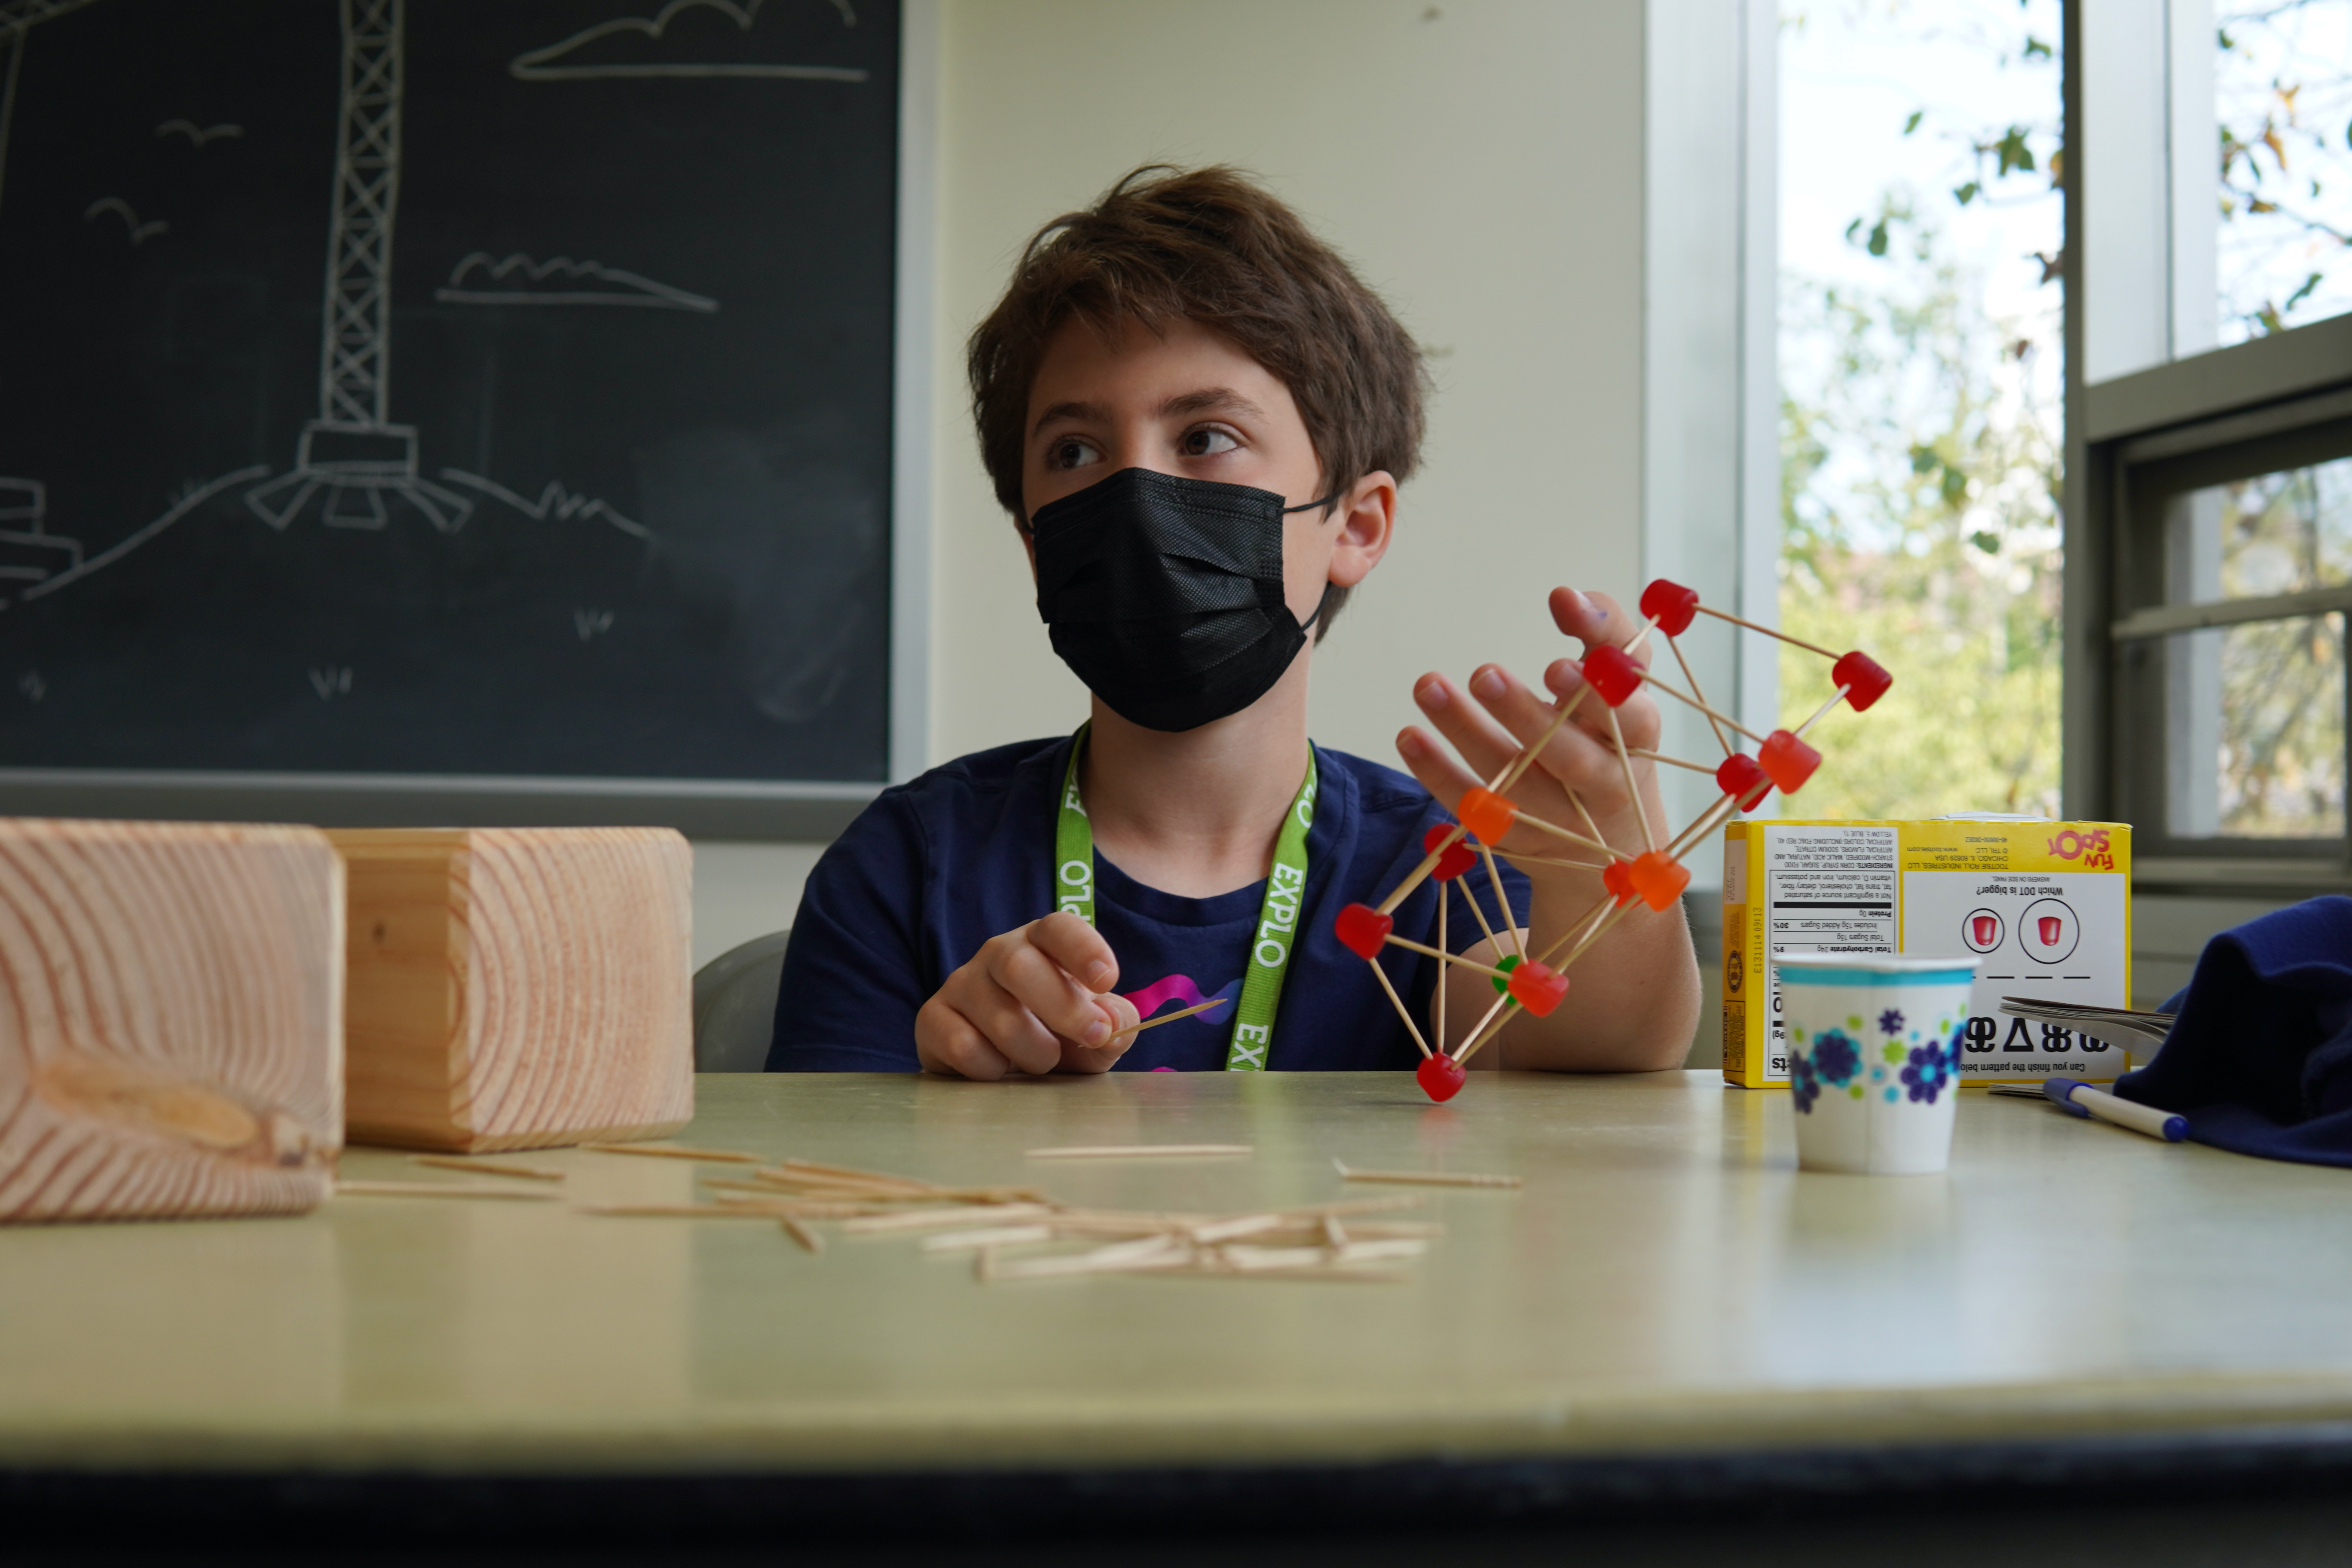 A student sitting at a desk holds a bridge model he made